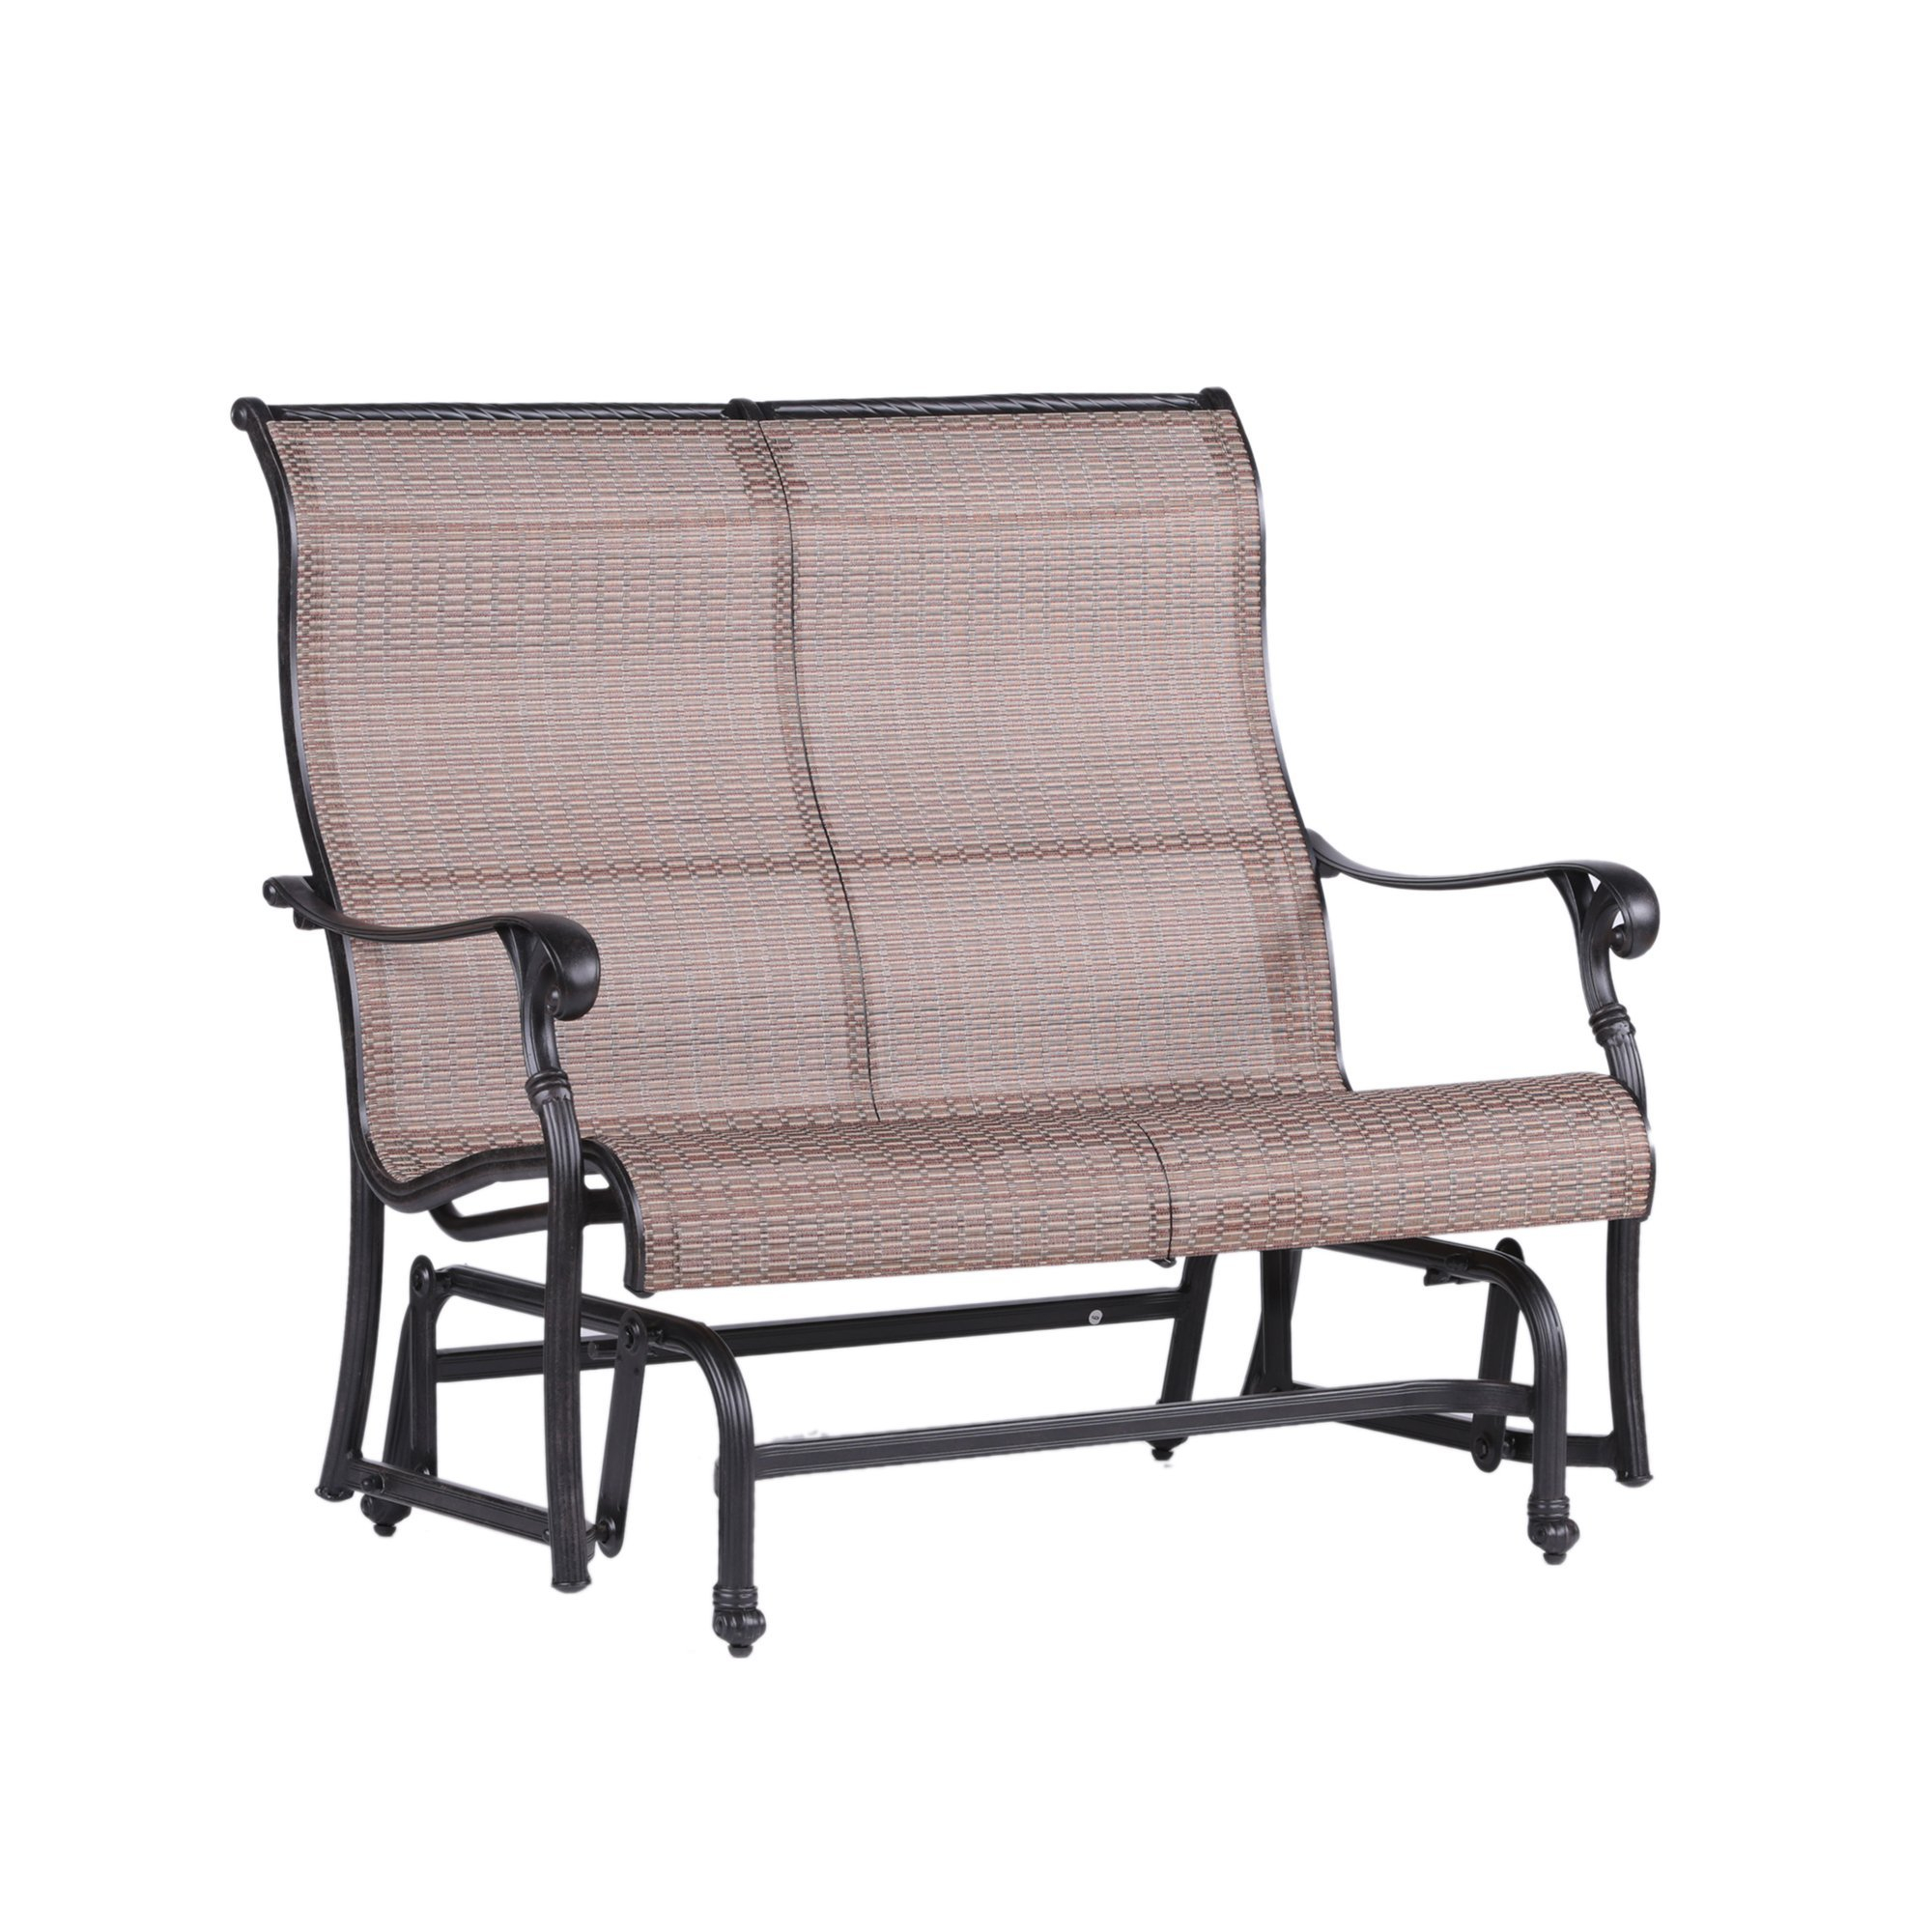 Patio Sparta Sling Double Glider, Outdoor Metal Glider With Regard To Sling Double Glider Benches (View 3 of 25)